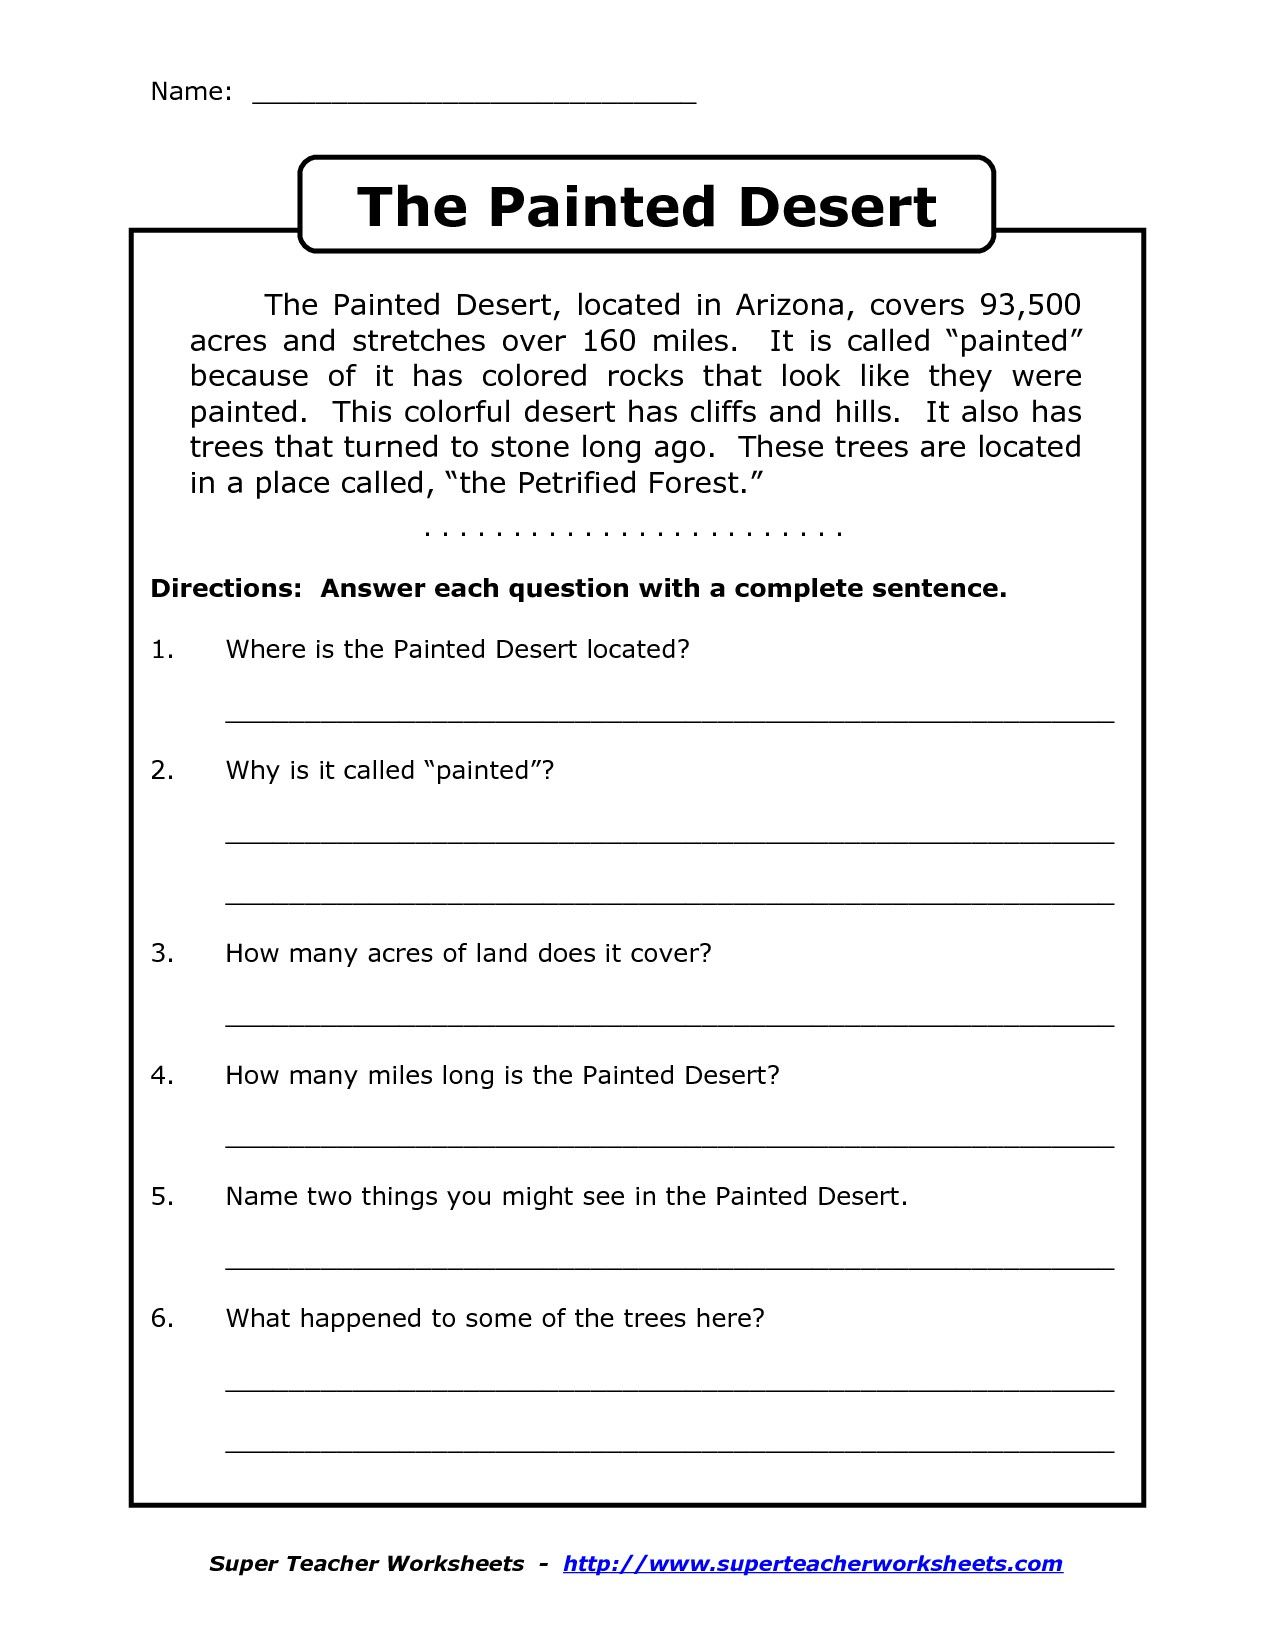 Worksheet Work For Grade 2 worksheet reading comprehension grade 2 worksheets noconformity 1000 images about tina2 on pinterest and morning